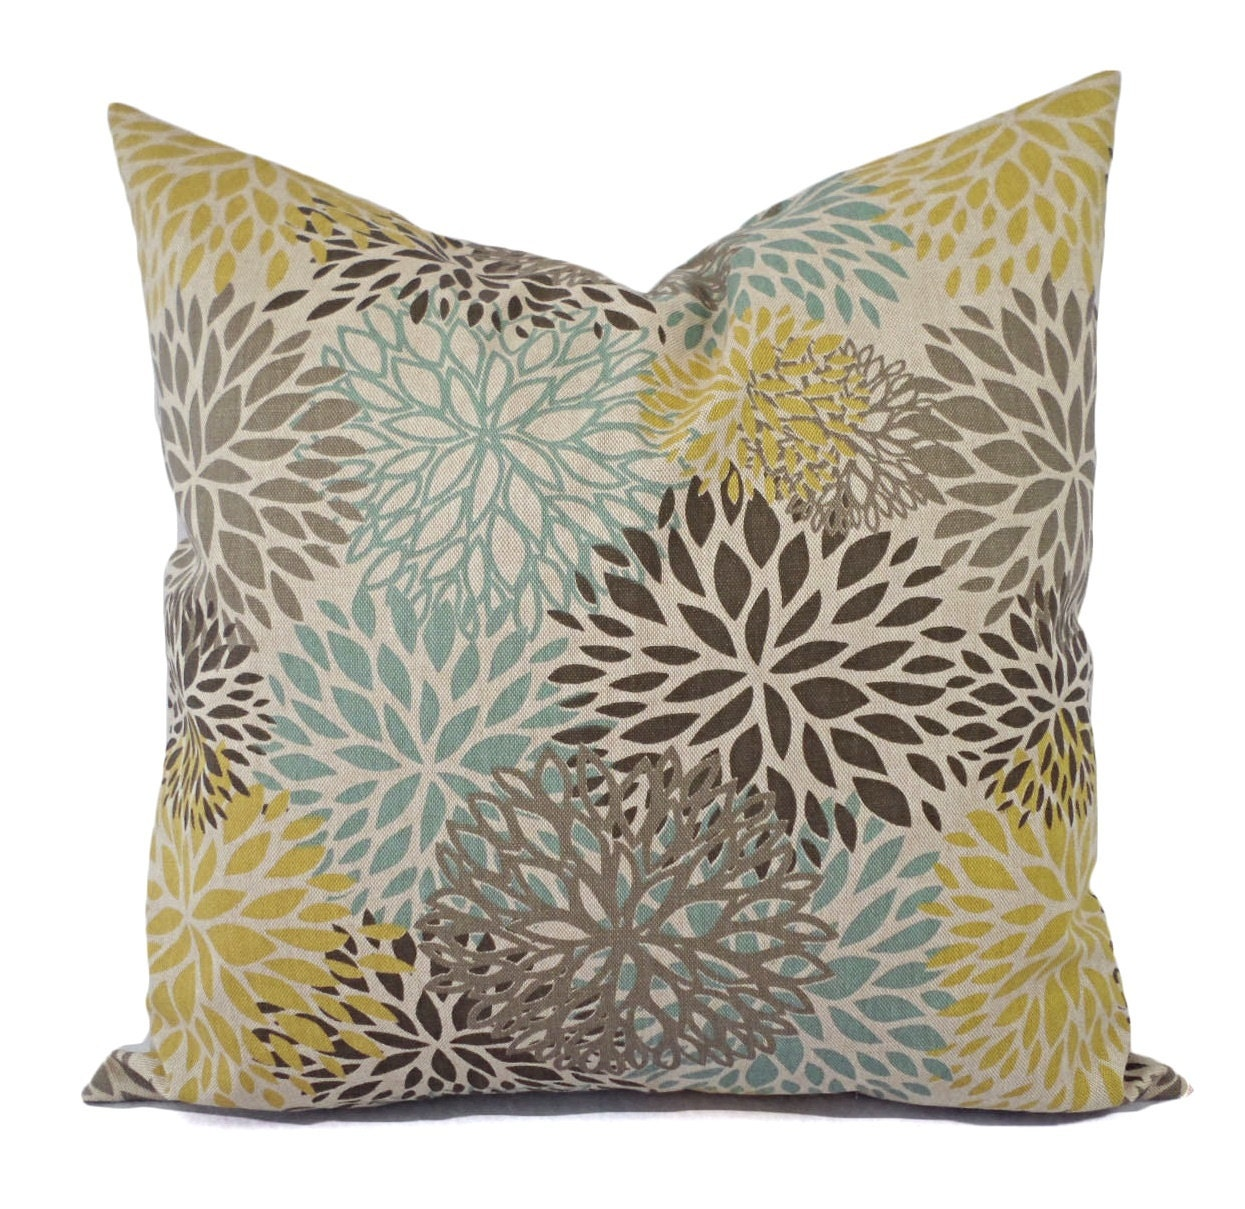 Soft Yellow Decorative Pillows : Brown Yellow and Blue Decorative Pillow by CastawayCoveDecor